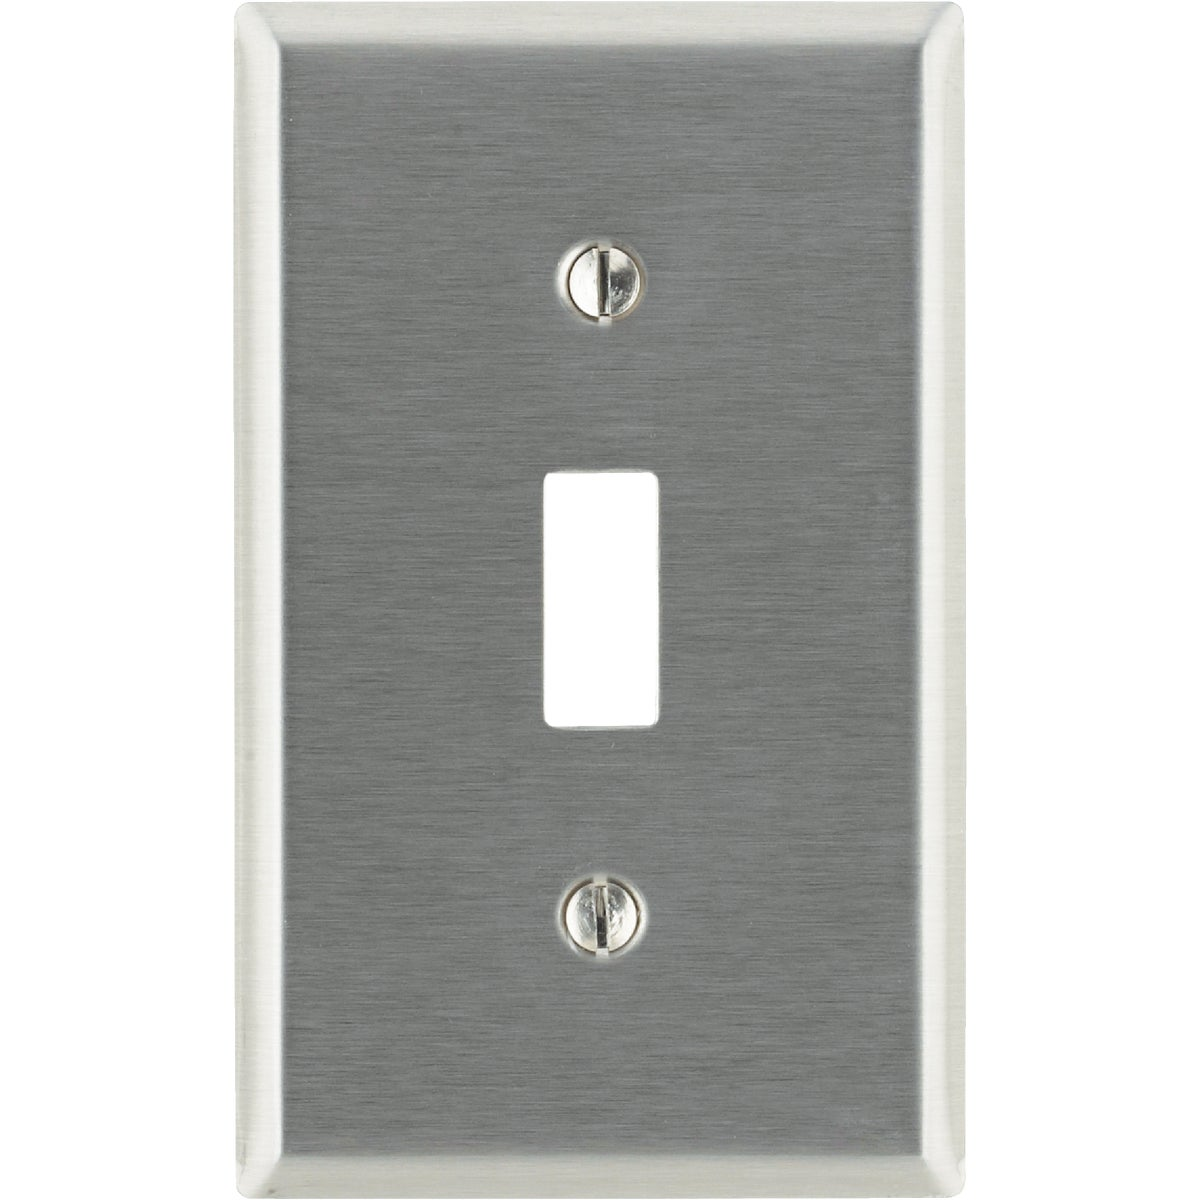 SS 1-TOGGLE WALL PLATE - 84001 by Leviton Mfg Co